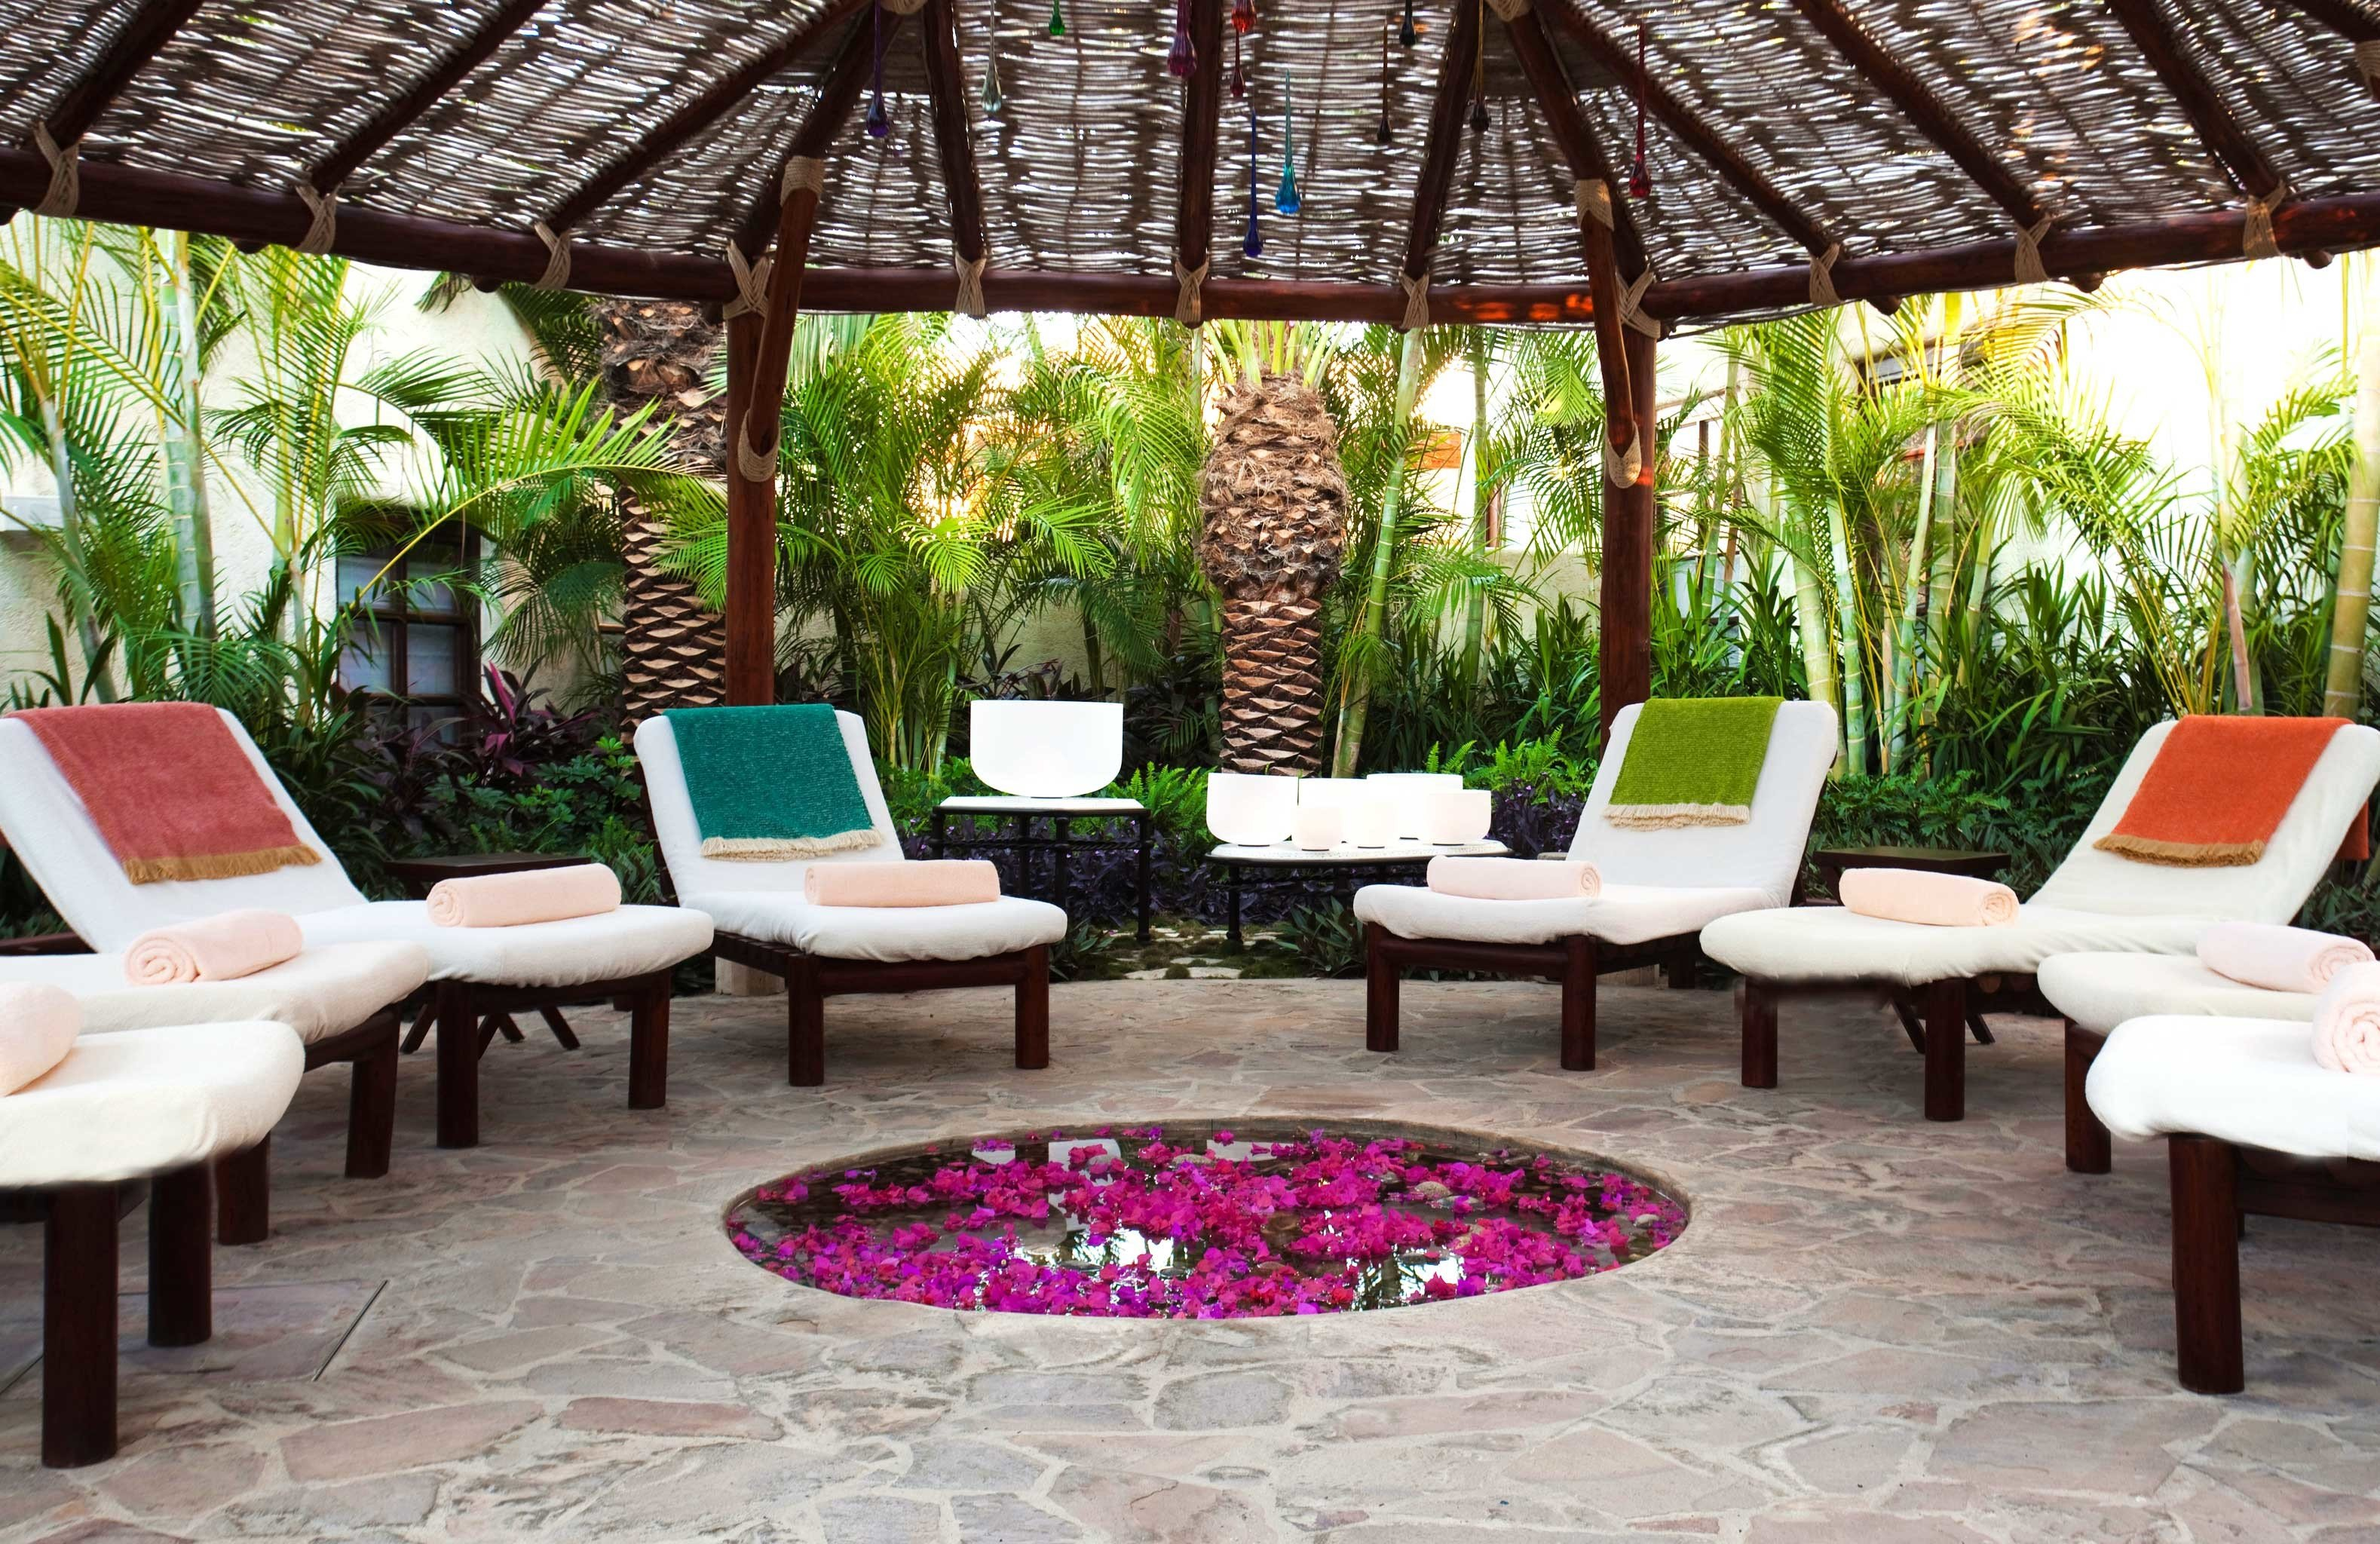 Beachfront Lounge Scenic views Tropical tree property chair Resort backyard outdoor structure Courtyard restaurant Villa Patio hacienda cottage